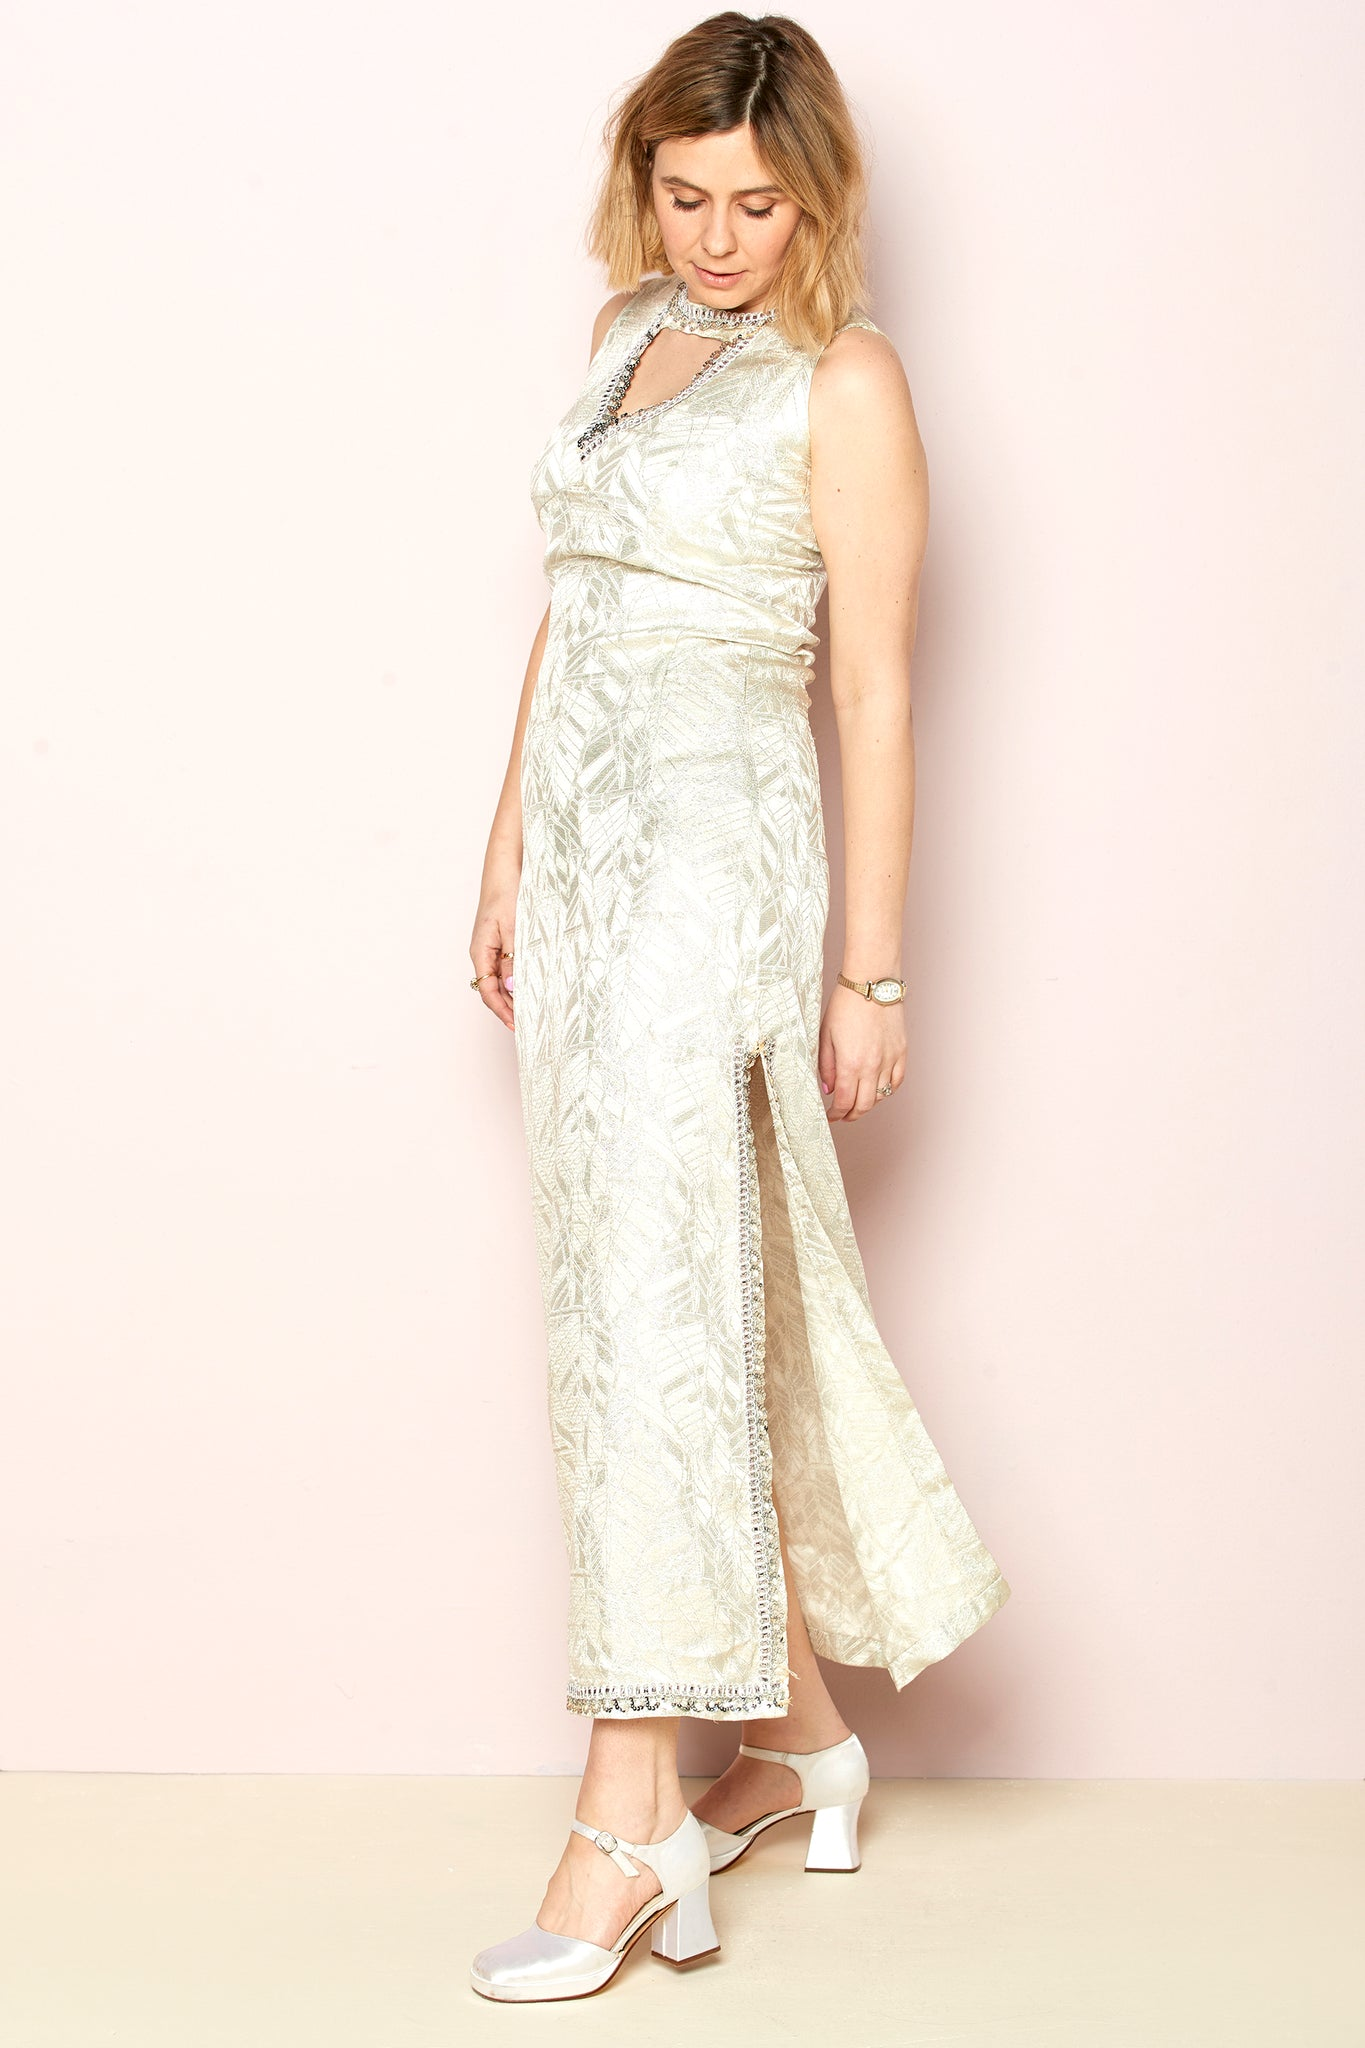 Paloma - Vintage Cocktail Maxi Dress in Silver with Embellishment - Staying Alive Vintage